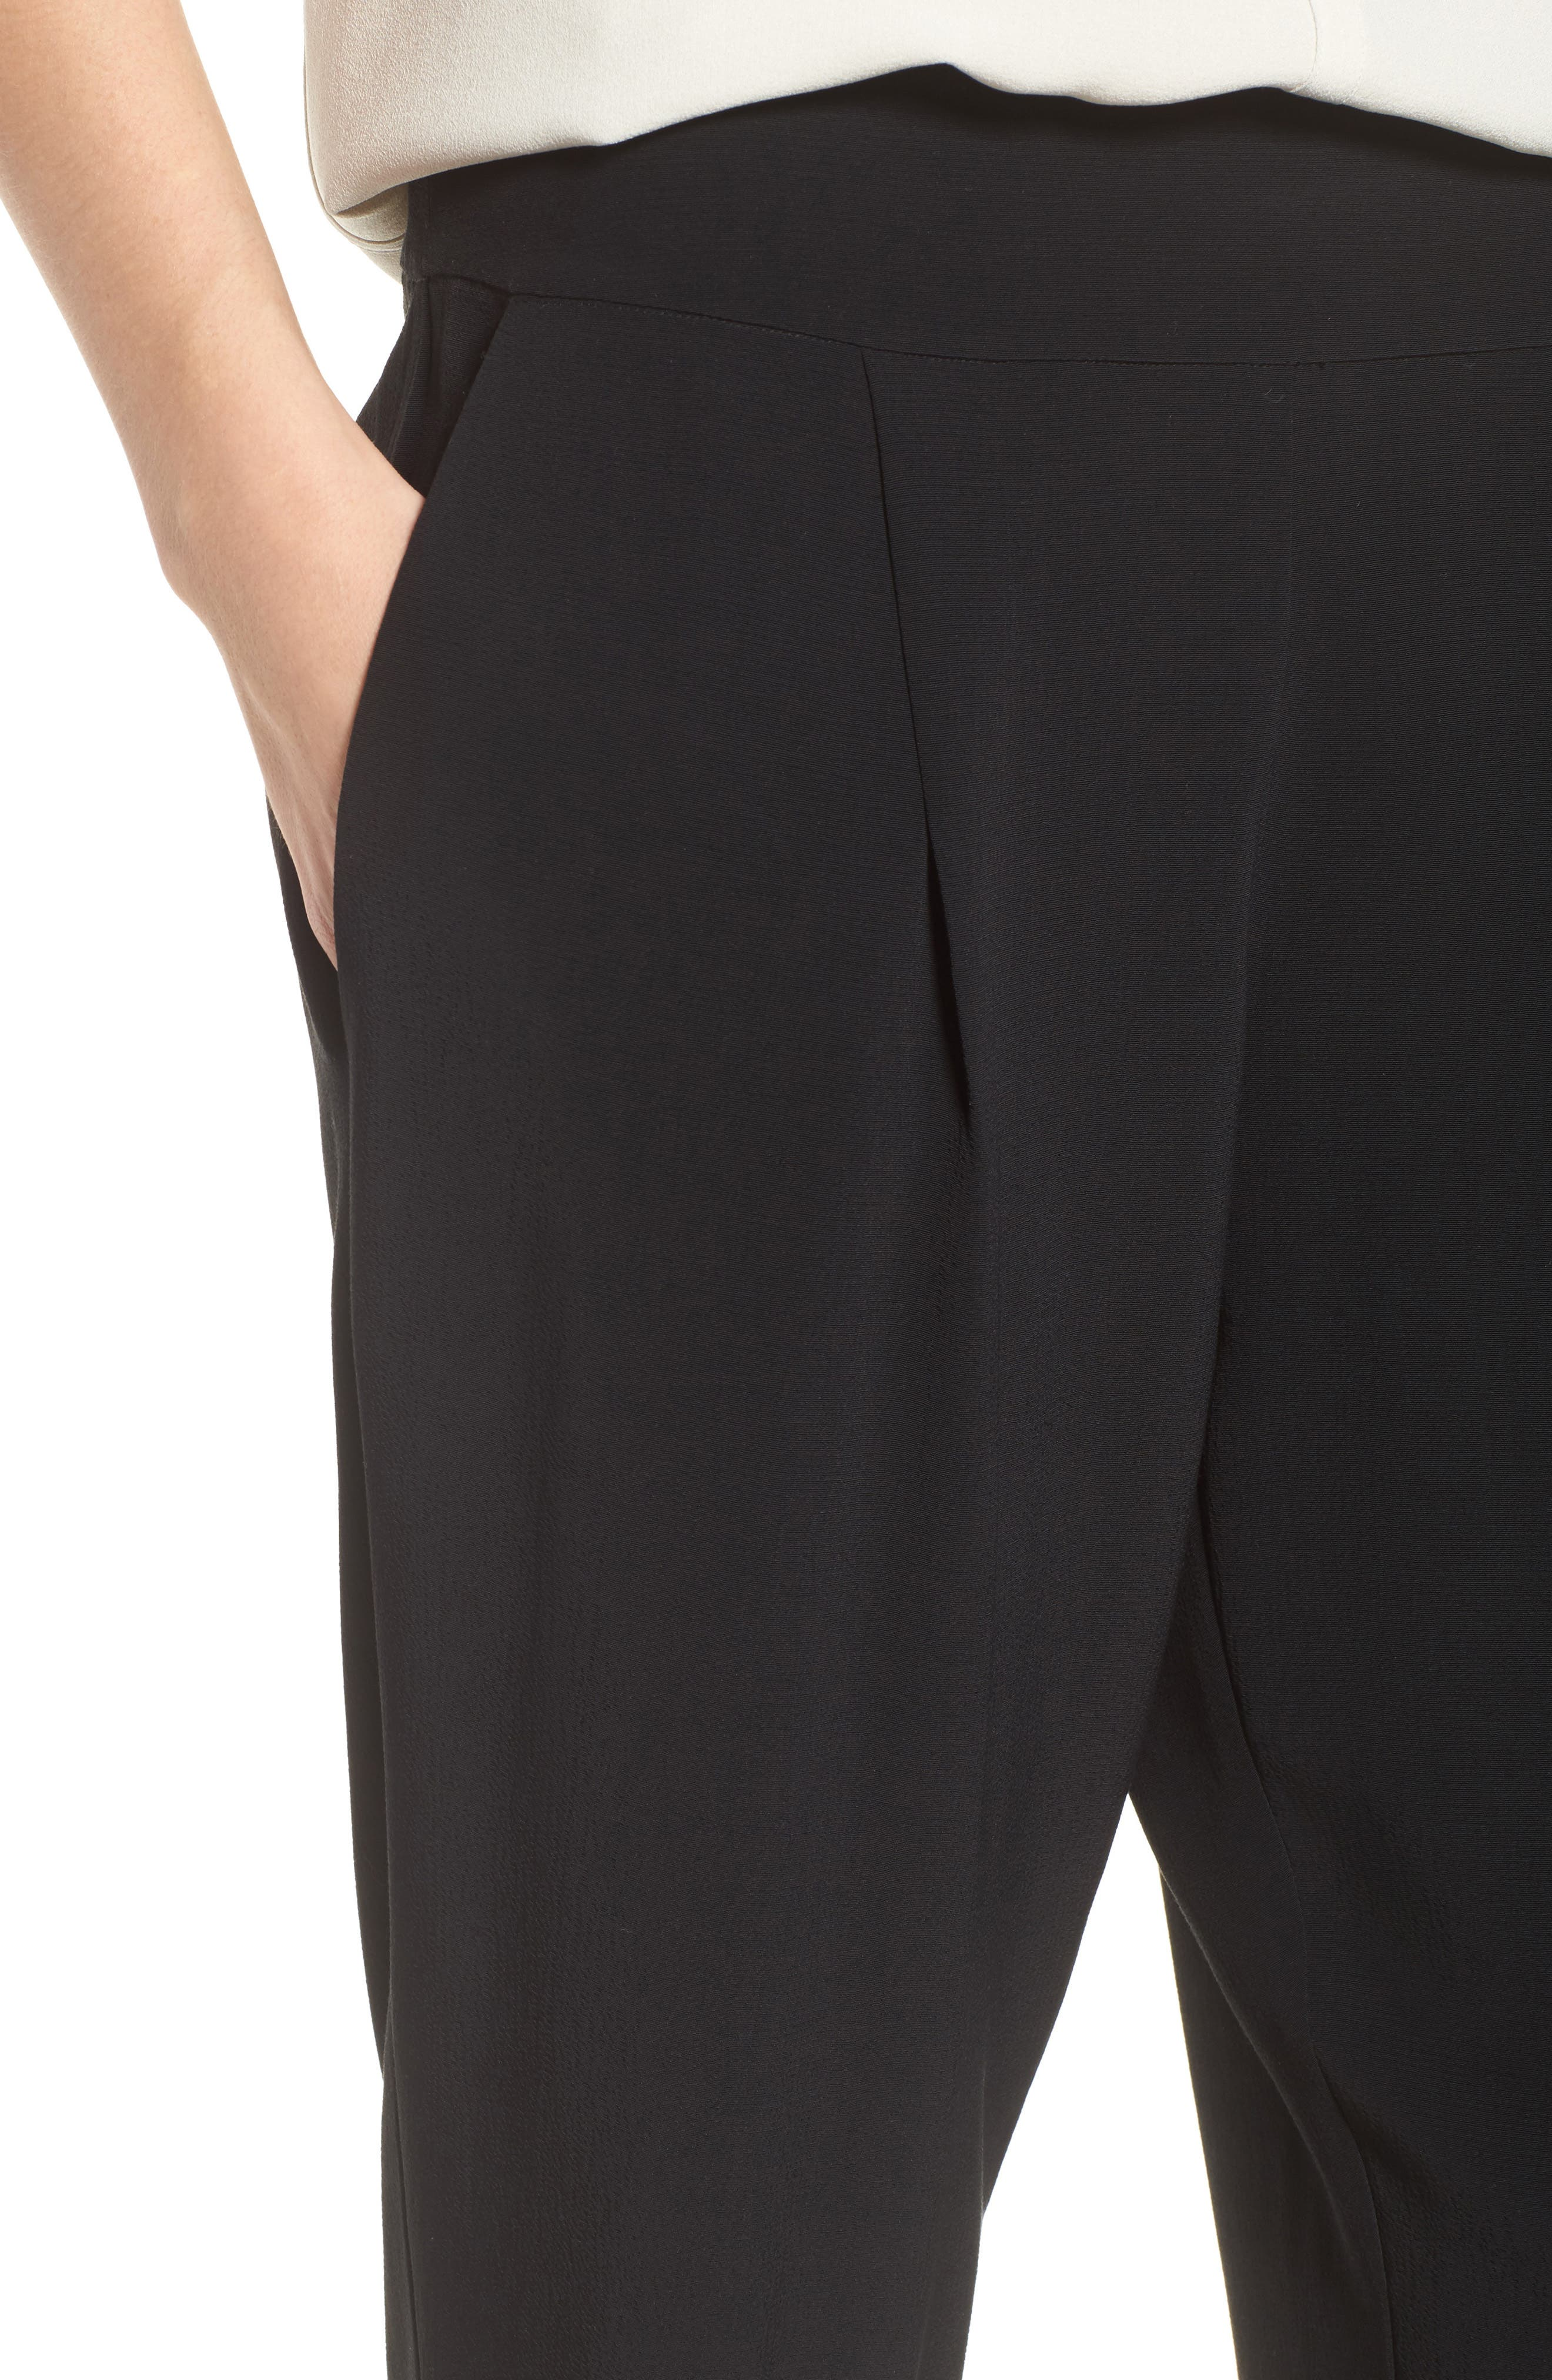 Slouchy Tencel<sup>®</sup> Lyocell Blend Crop Pants,                             Alternate thumbnail 4, color,                             001